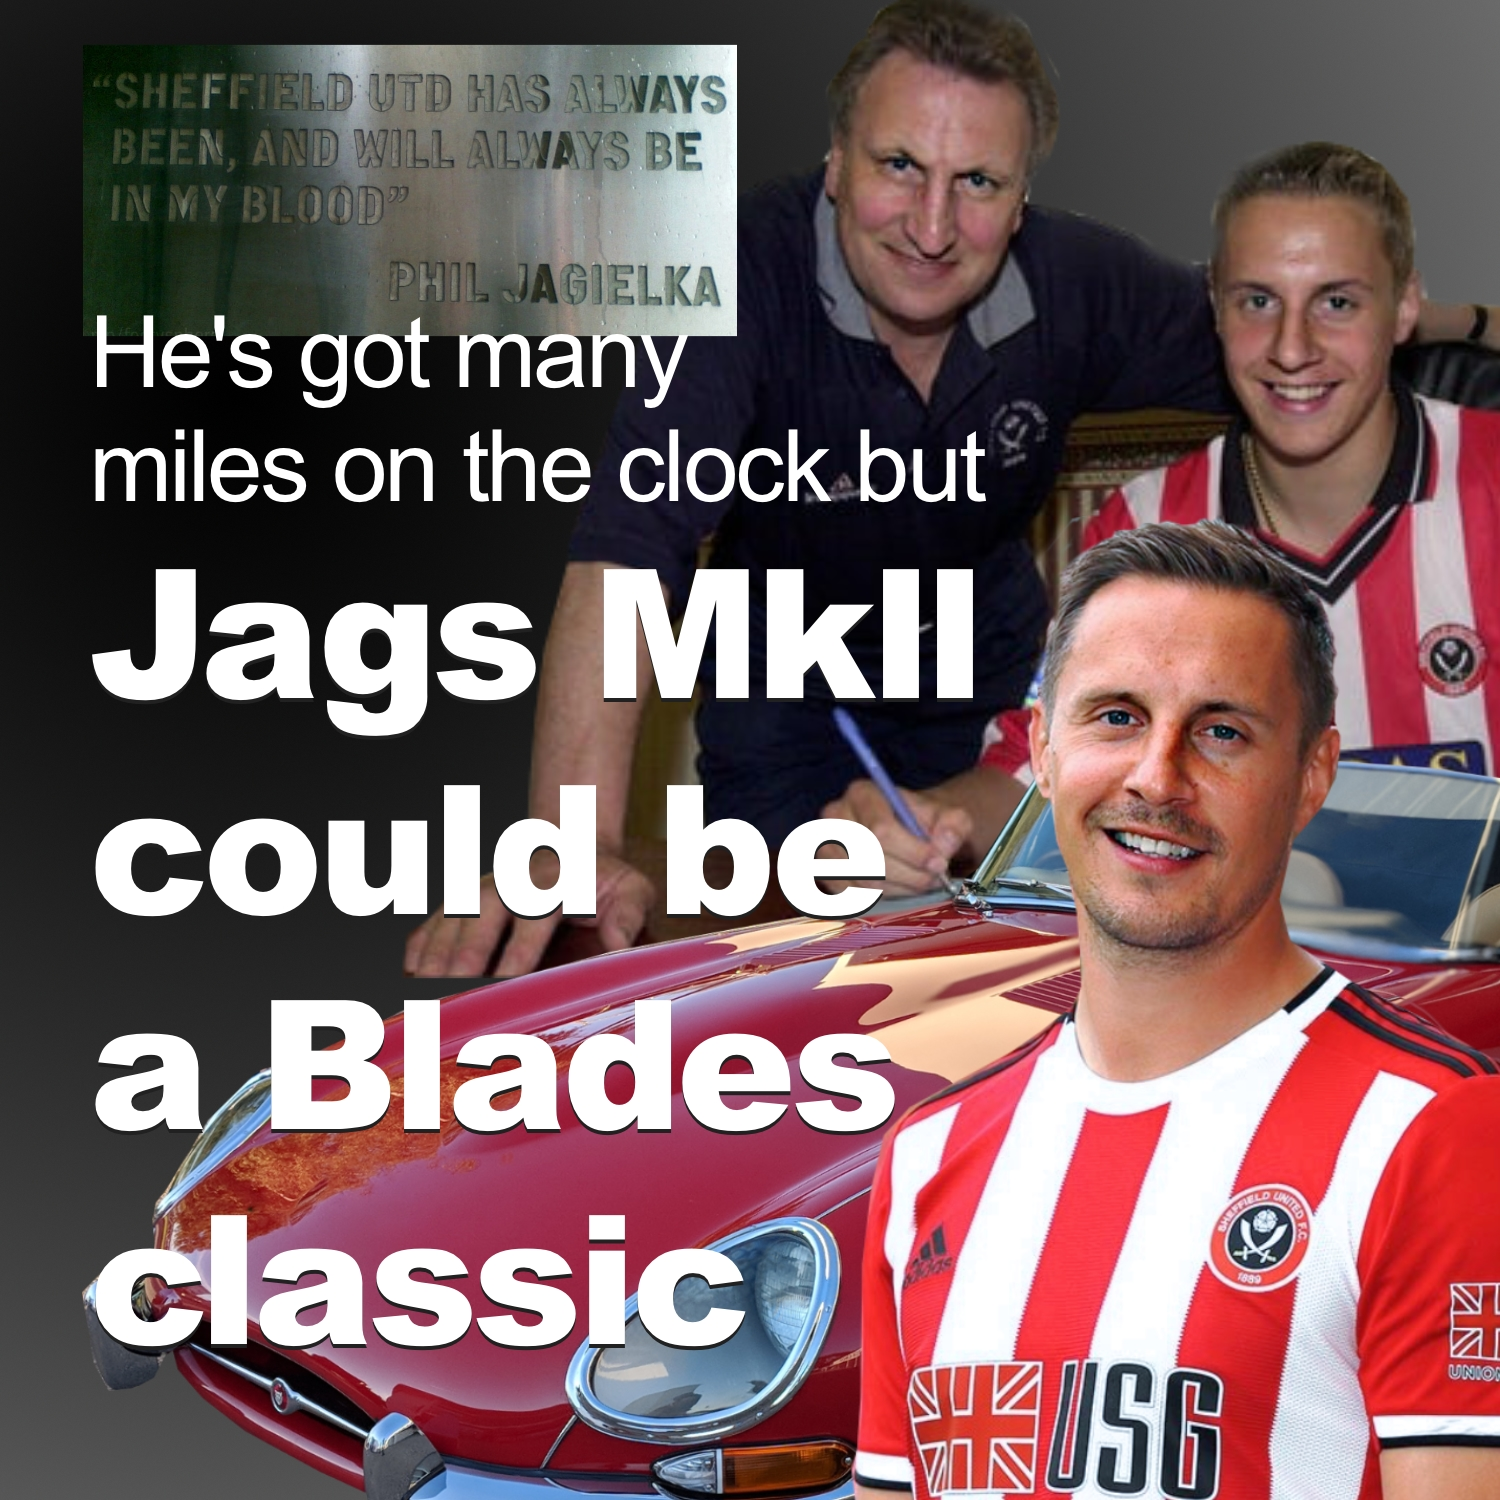 Phil Jagielka's return to Sheffield United is perfect fit as Blades face daunting Premier League challenge.